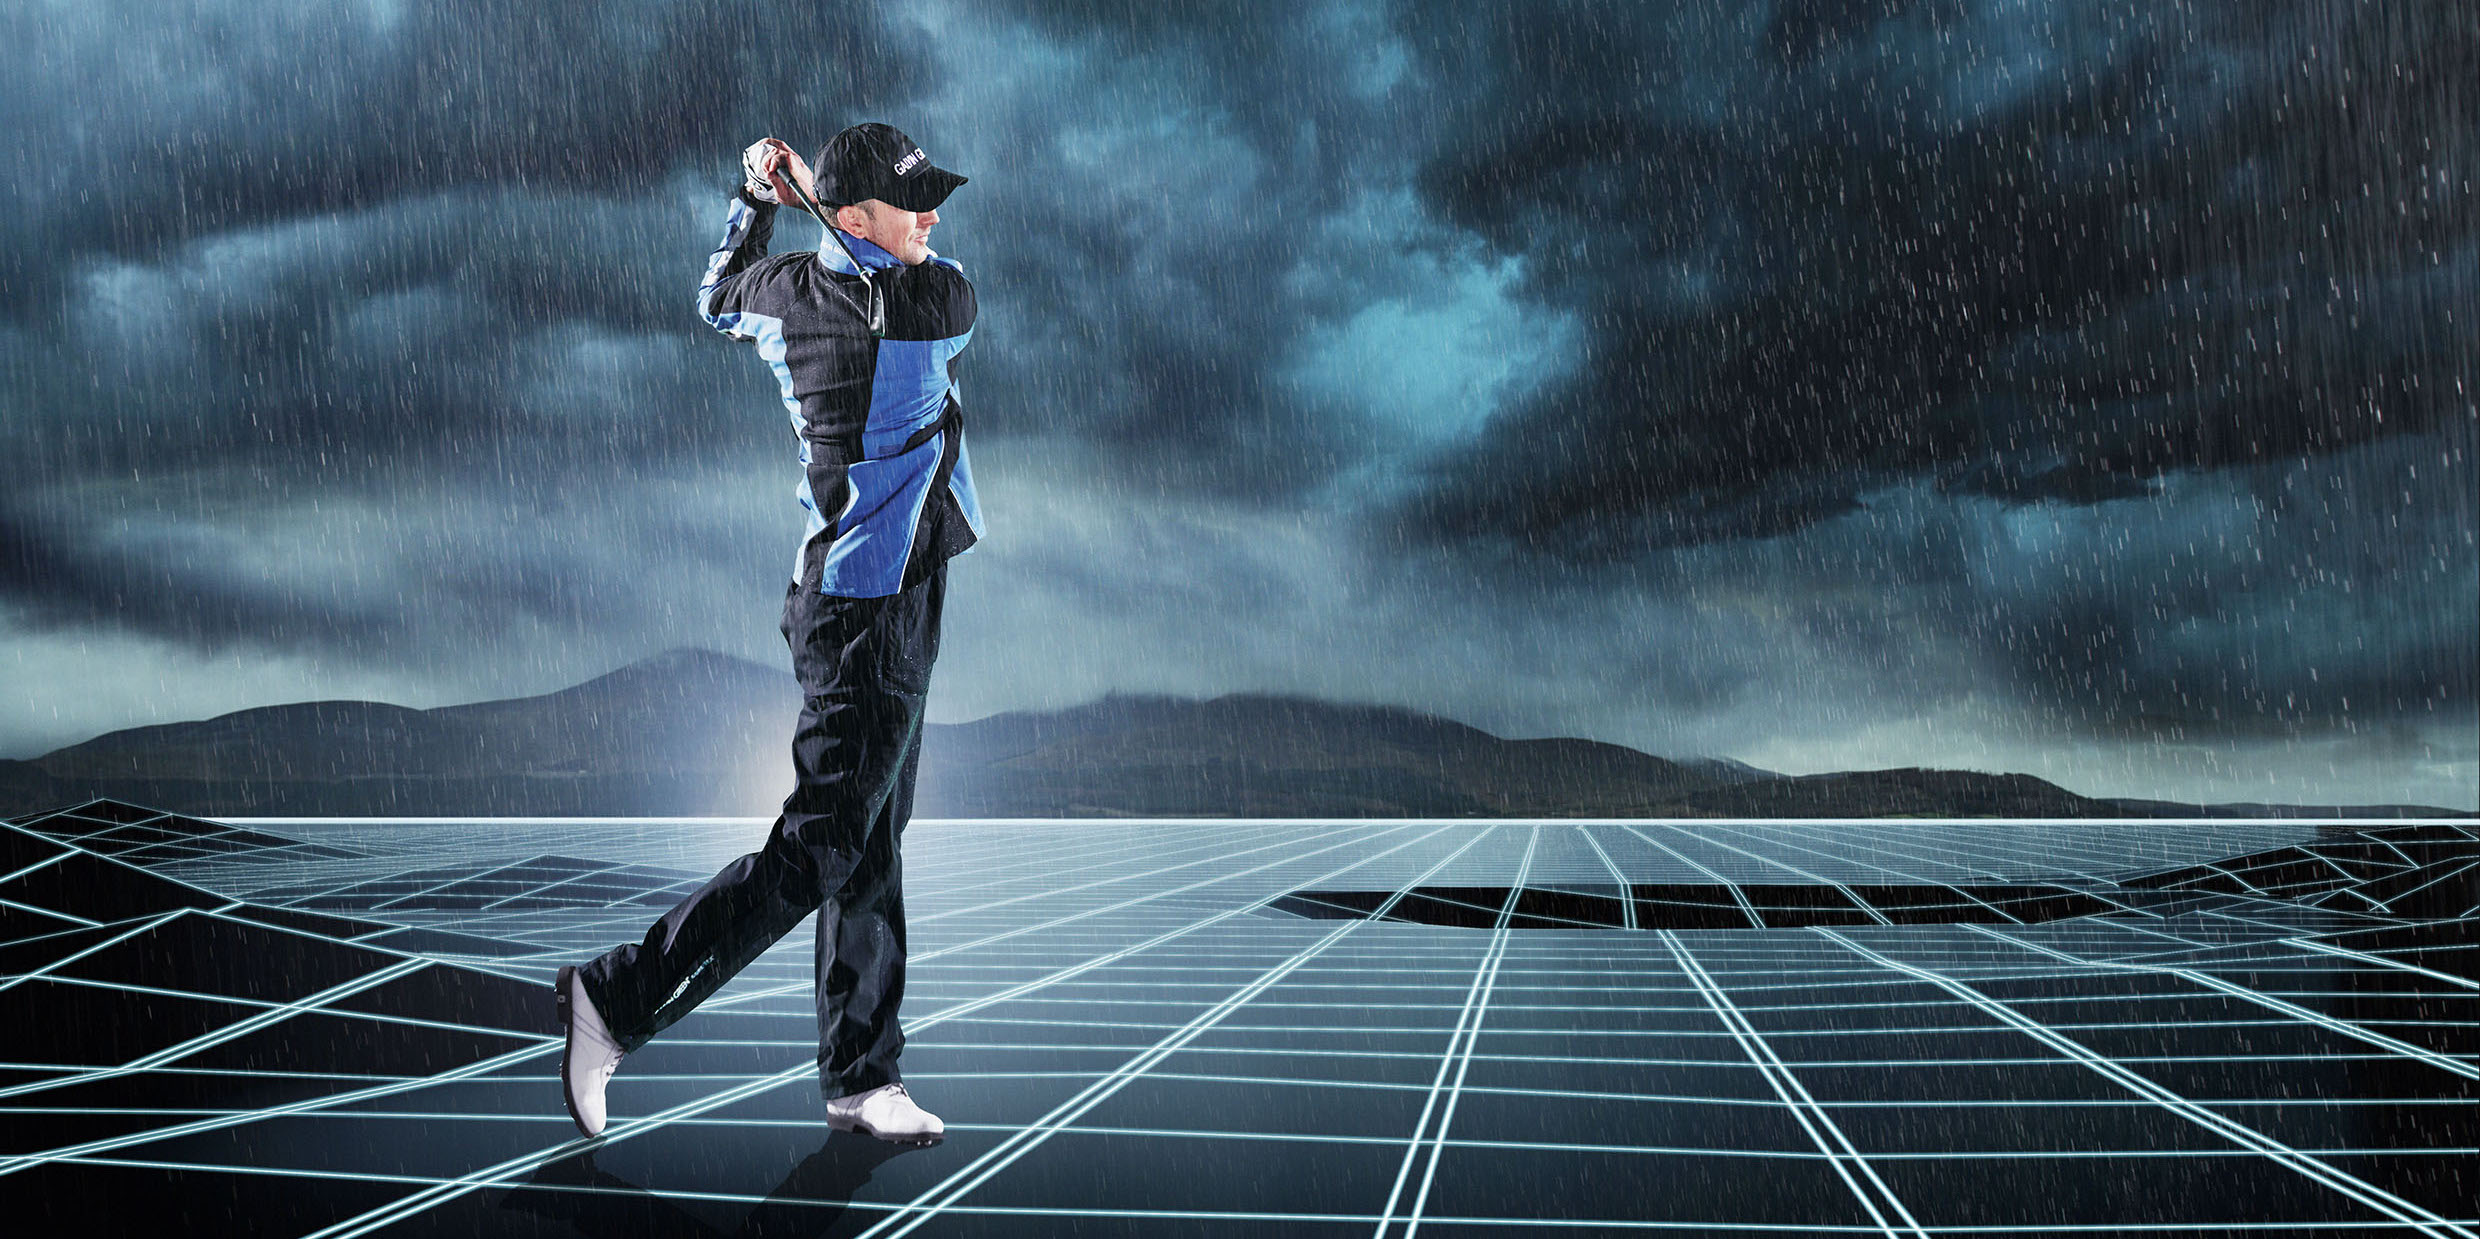 (Source: galvingreen.com)